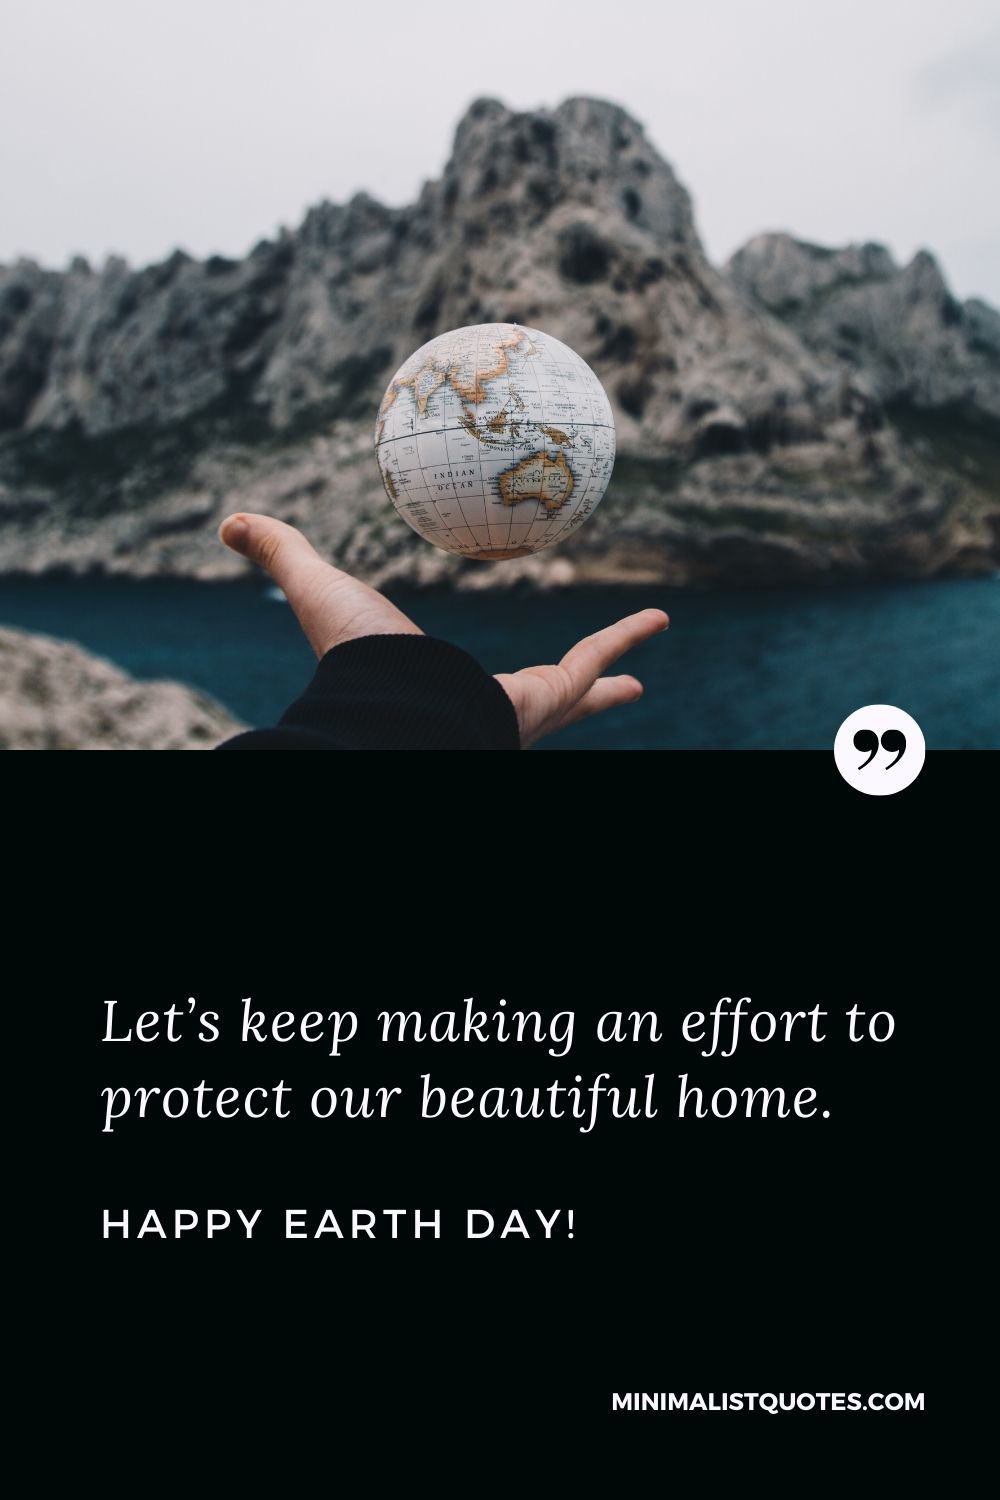 Earth Day wishes, quotes & messages with images: Let's keep making an effort to protect our beautiful home. Happy Earth Day!